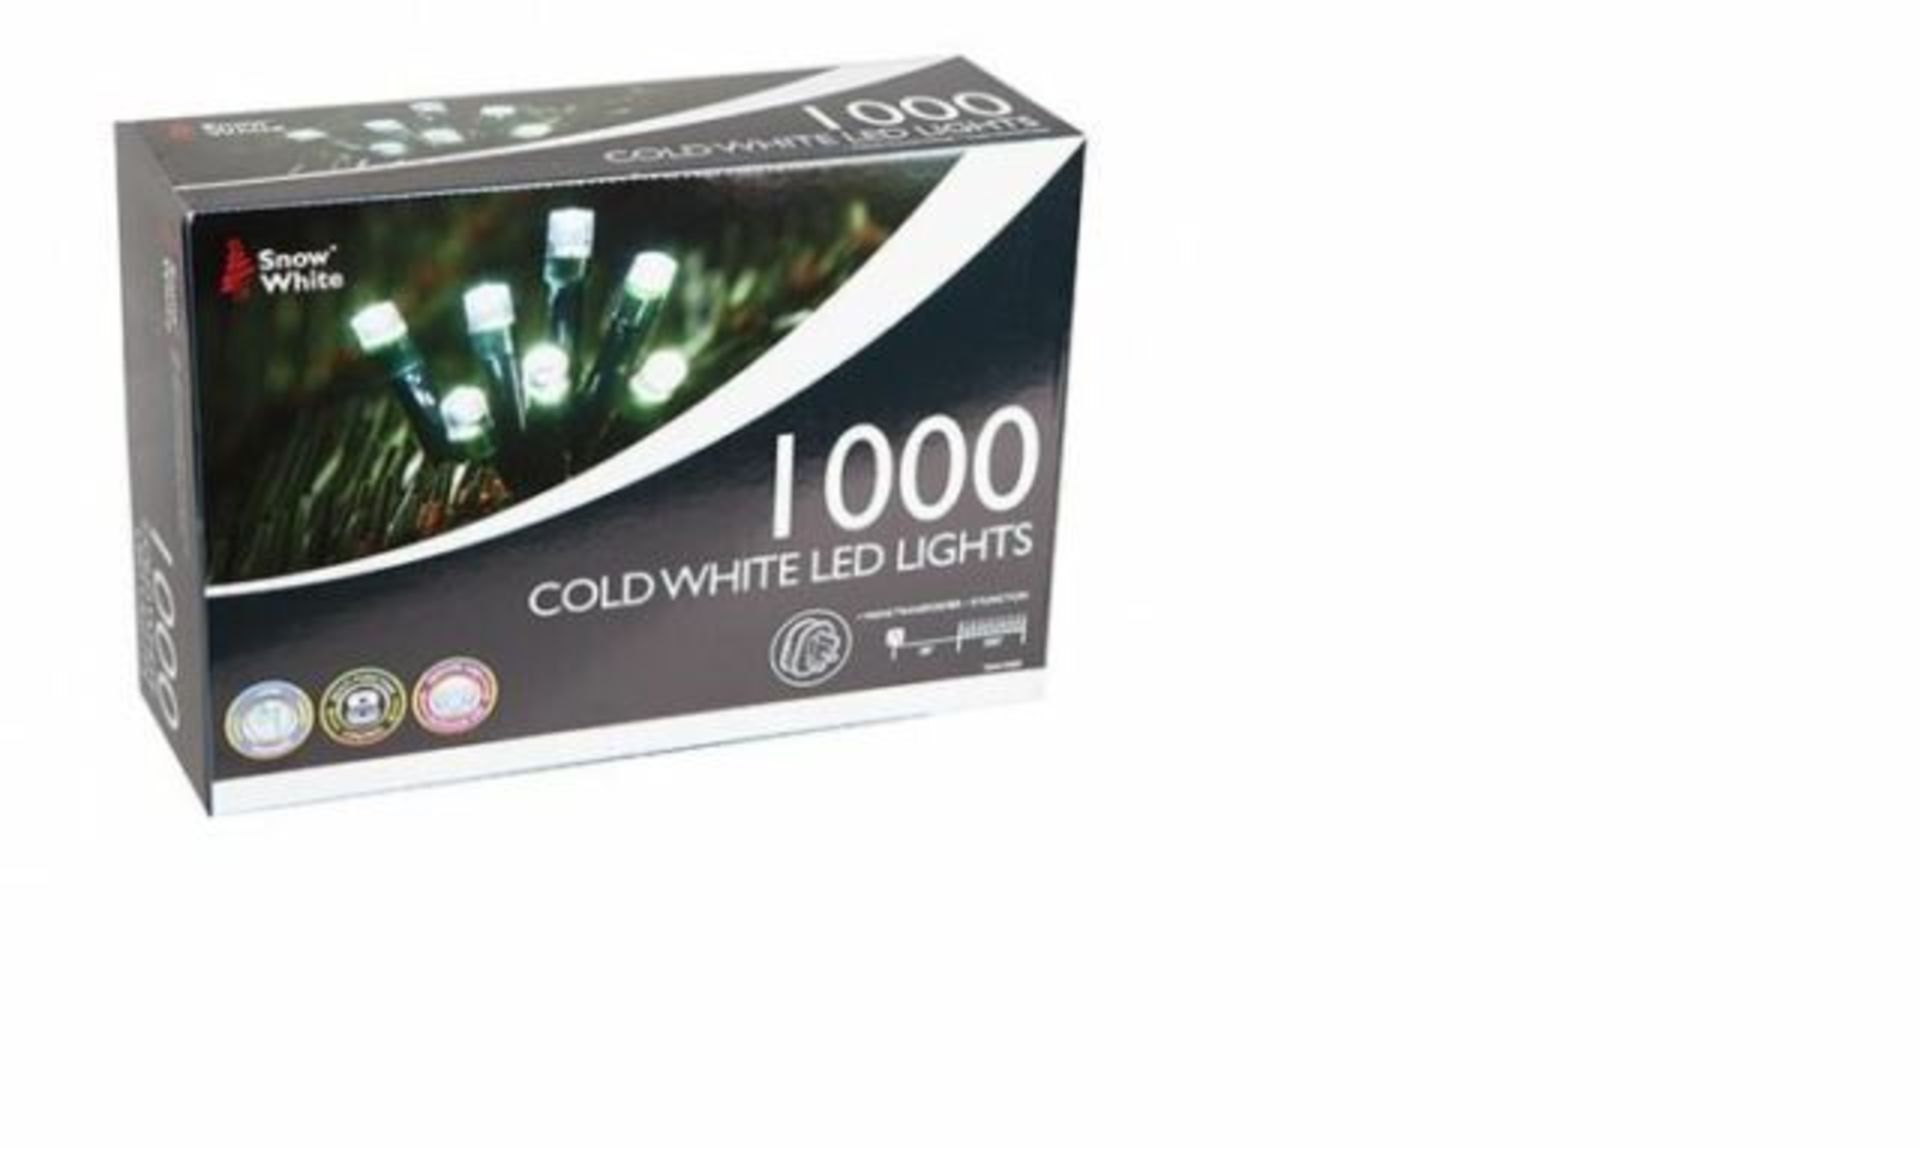 Lot 18026 - V Brand New 1000 Cold White LED Multi Function Christmas Lights